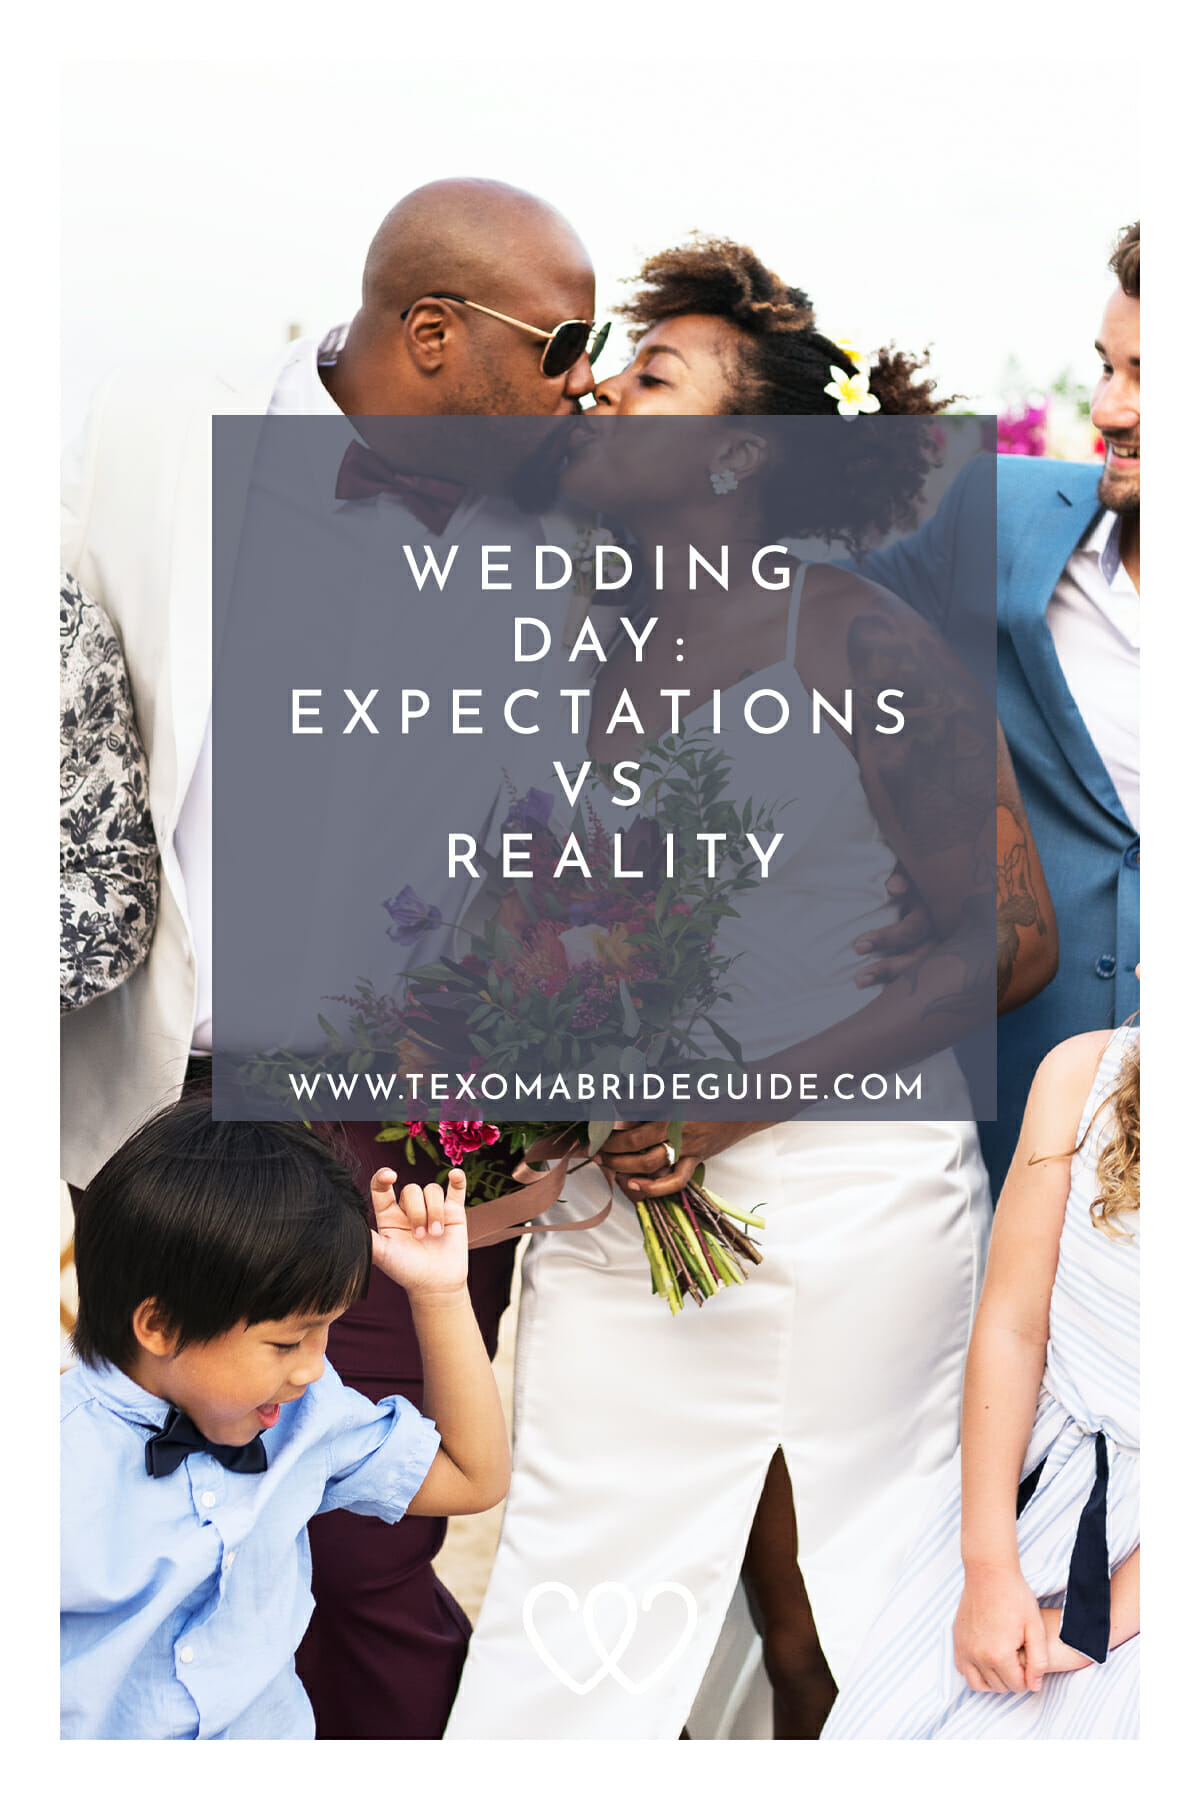 Wedding Day: Expectations vs Reality | Texoma Bride Guide Blog